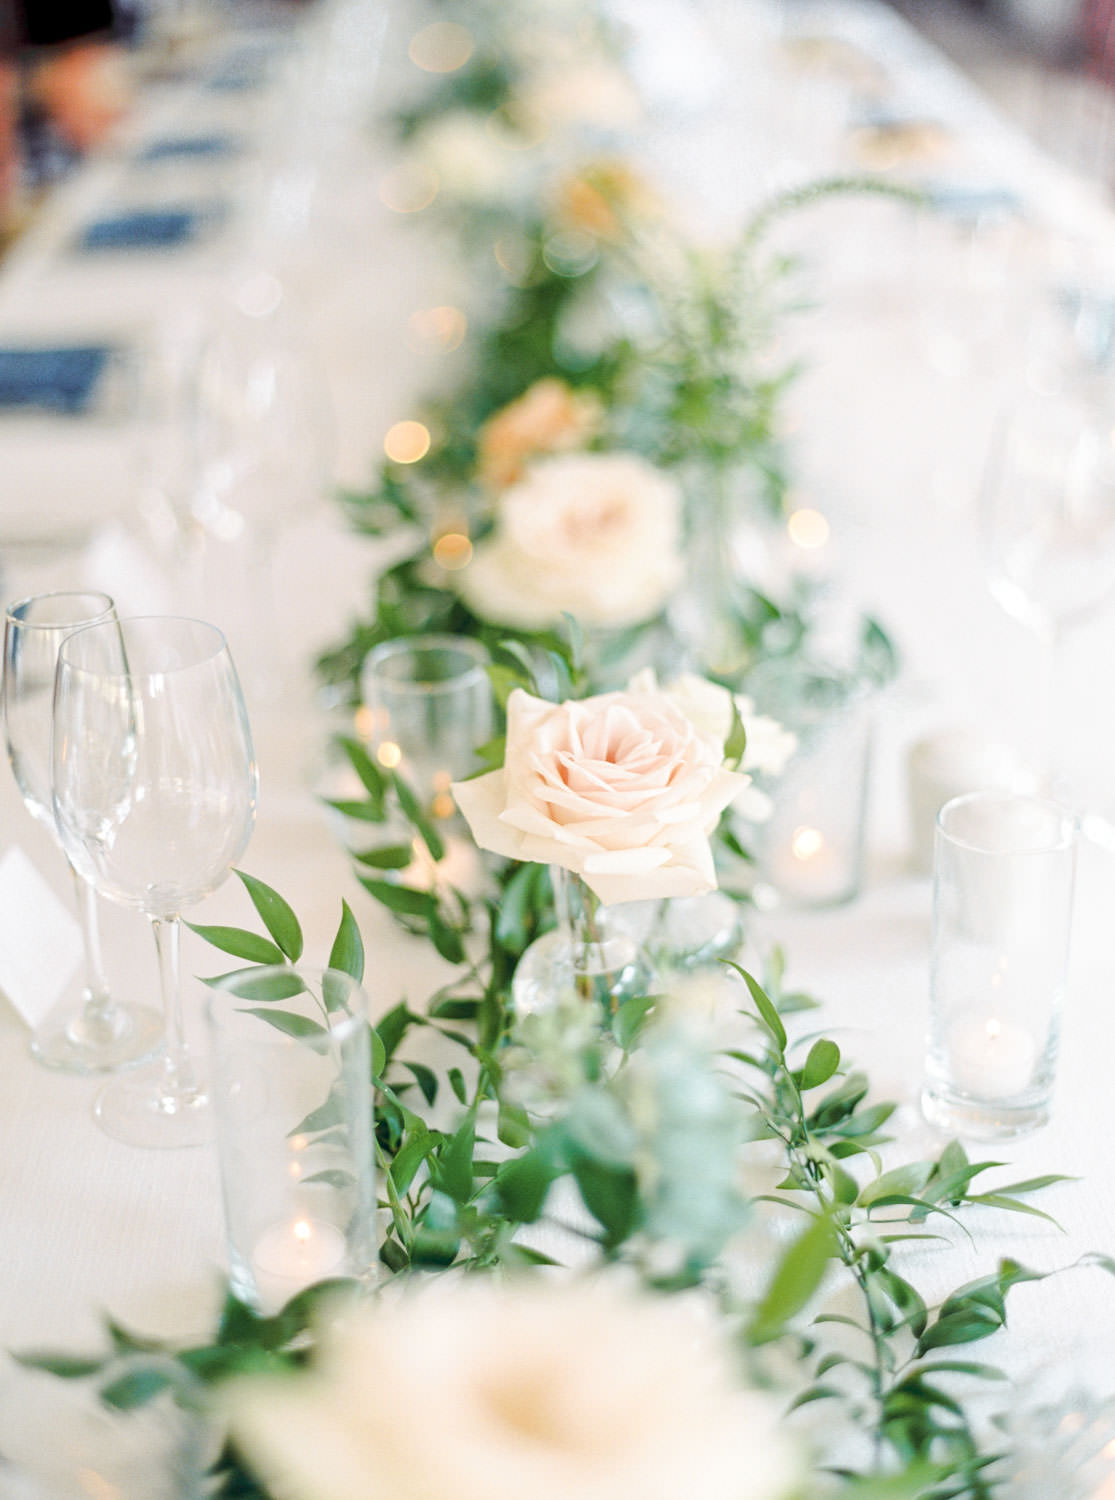 Film image of Santaluz Club wedding tented reception with blue napkins and peach green and white flower arrangement centerpieces, Cavin Elizabeth Photography